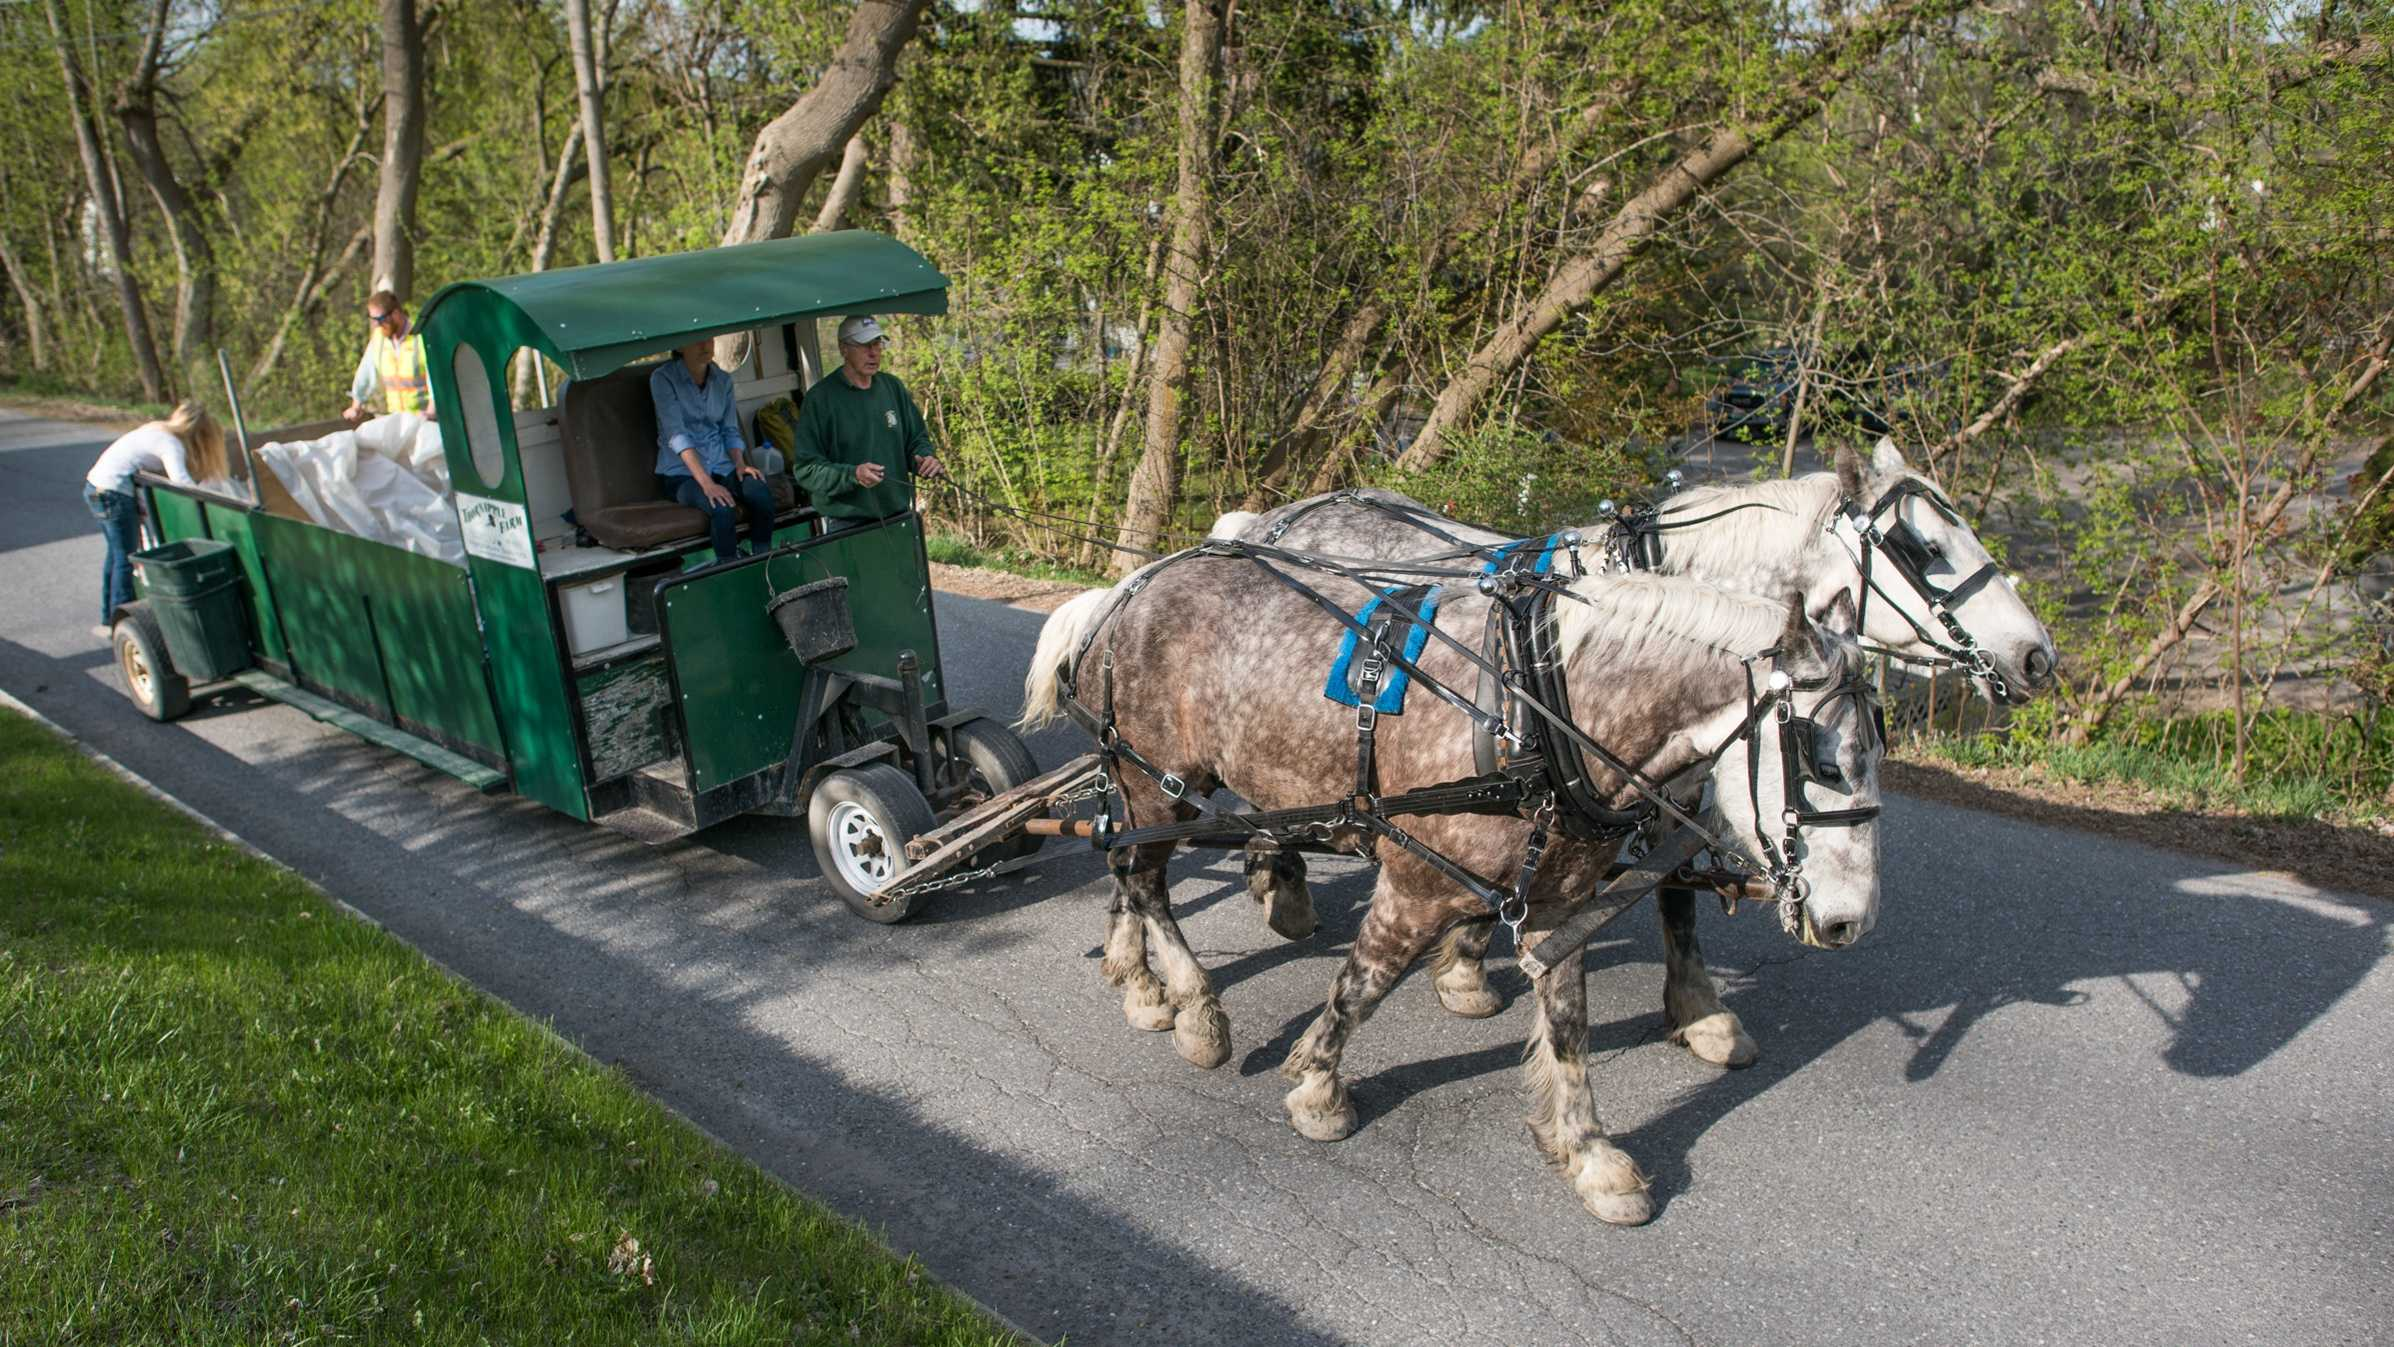 In this May 5, 2015 photo, Patrick Palmer drives his horse-drawn garbage collection wagon and its crew along a street in Middlebury, Vt. Palmer's horses have clip-clopped through the sleepy village of Bristol collecting trash for 18 years. Now he is training a younger crew to collect trash with a team of draft horses in the busier college village of Middlebury.